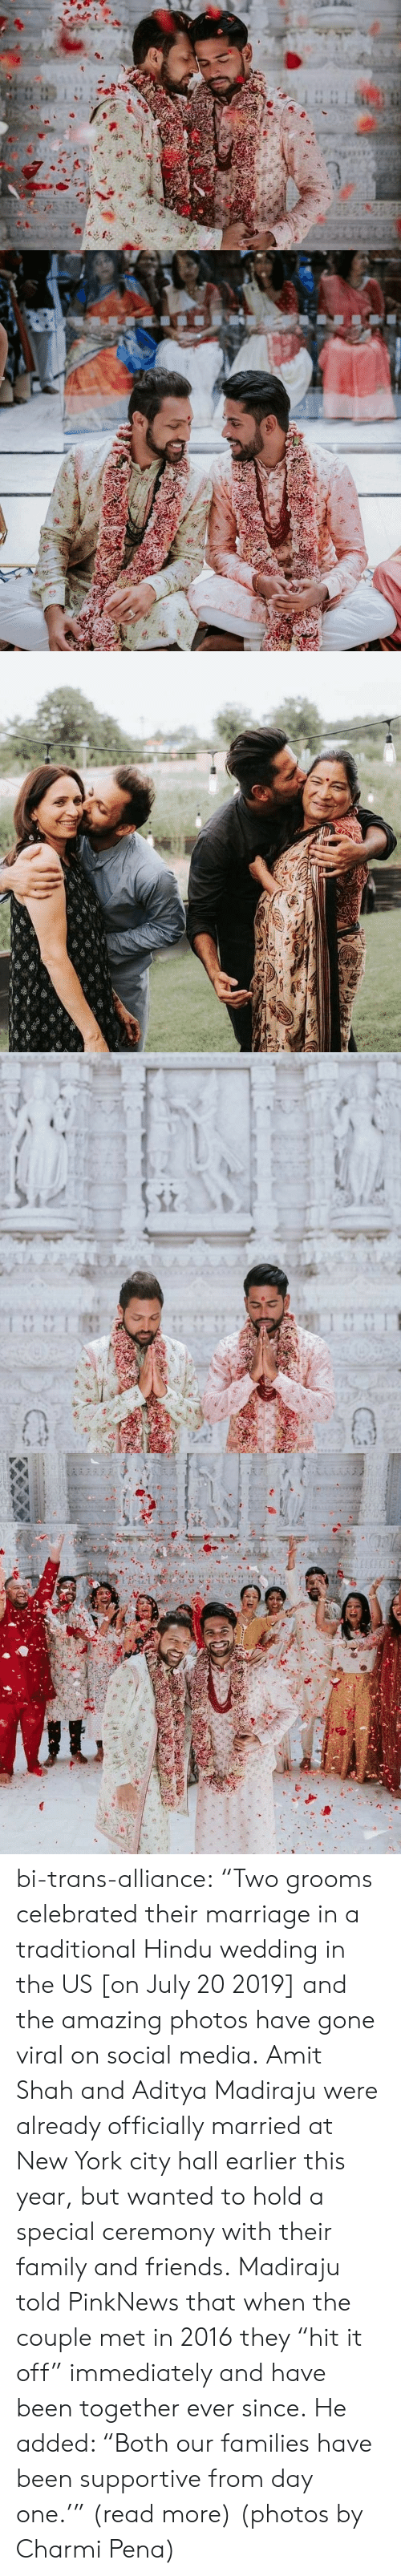 "In 2016: TA A  AAAA  1 1 bi-trans-alliance:   ""Two grooms celebrated their marriage in a traditional Hindu wedding in the US [on July 20 2019] and the amazing photos have gone viral on social media.   Amit Shah and Aditya Madiraju were already officially married at New York city hall earlier this year, but wanted to hold a special ceremony with their family and friends. Madiraju told PinkNews that when the couple met in 2016 they ""hit it off"" immediately and have been together ever since. He added: ""Both our families have been supportive from day one.'"" (read more) (photos by Charmi Pena)"